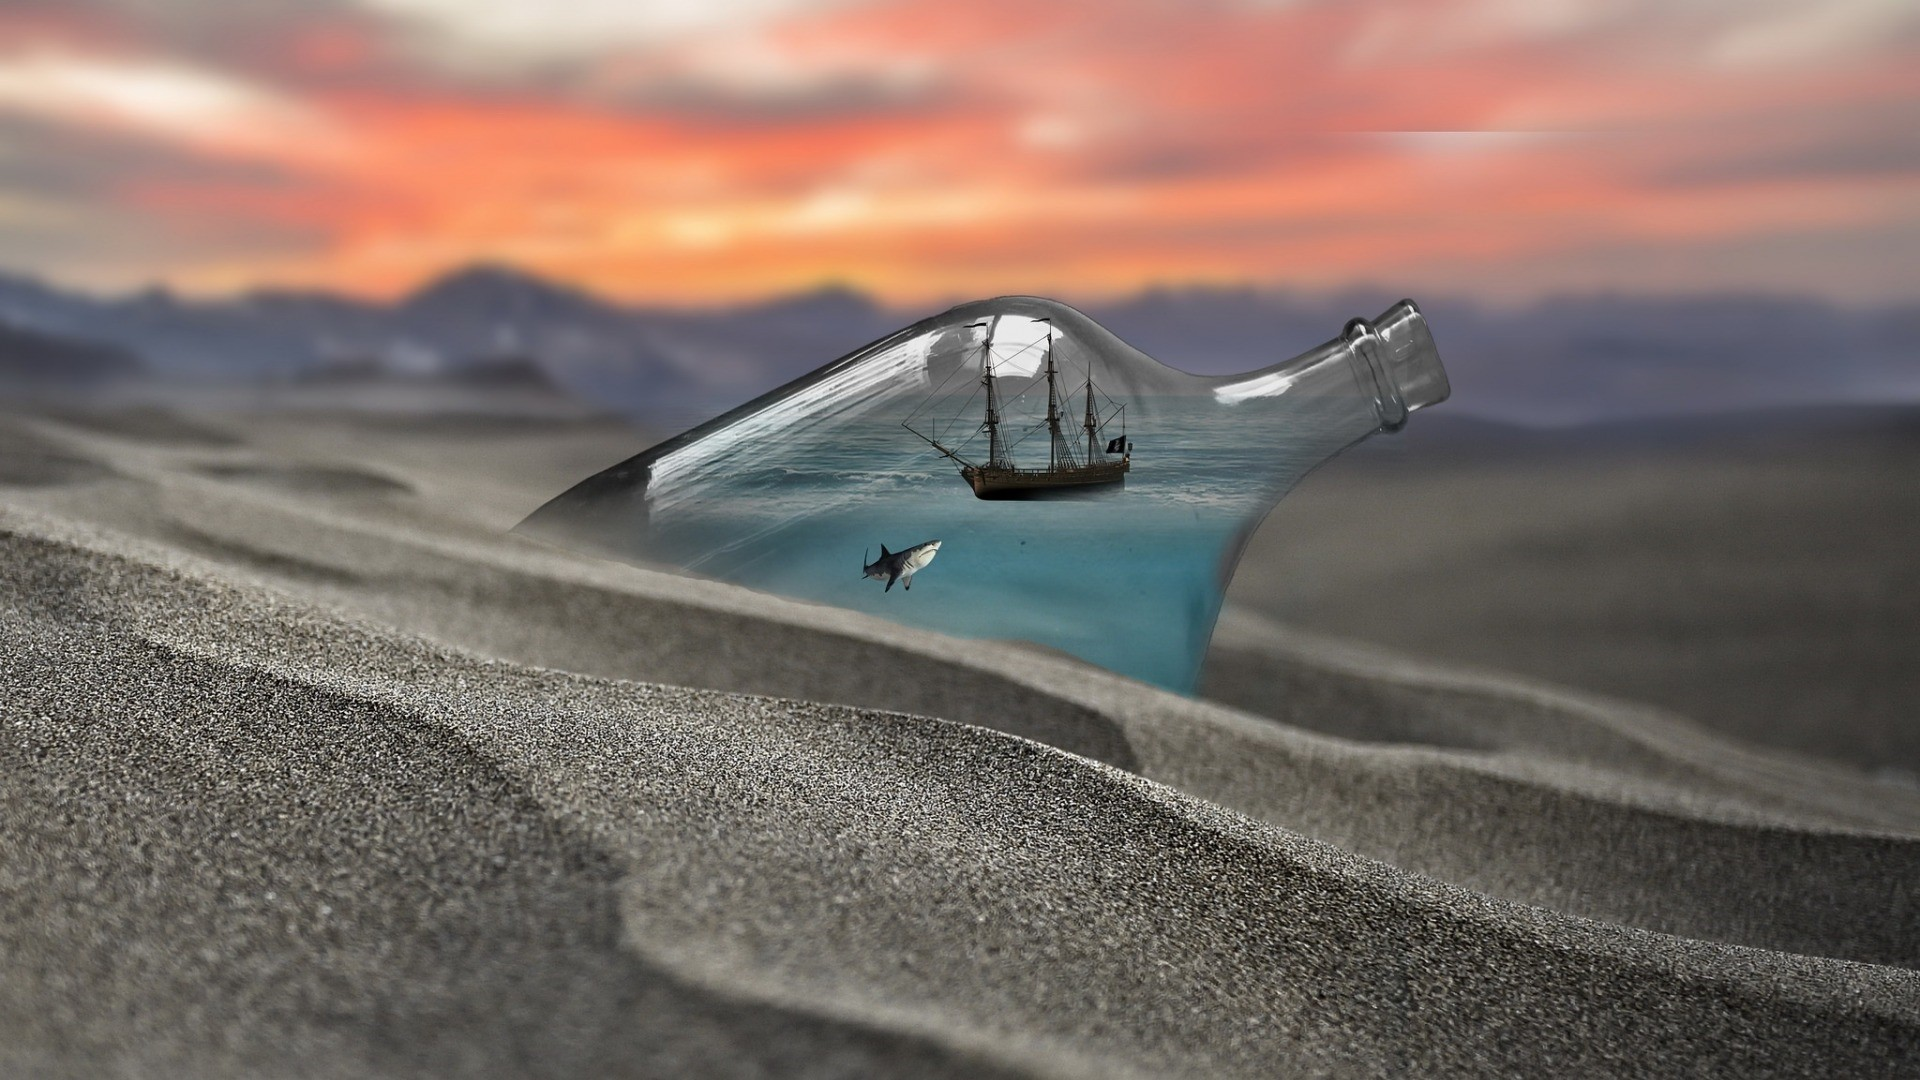 Ship In A Bottle Background